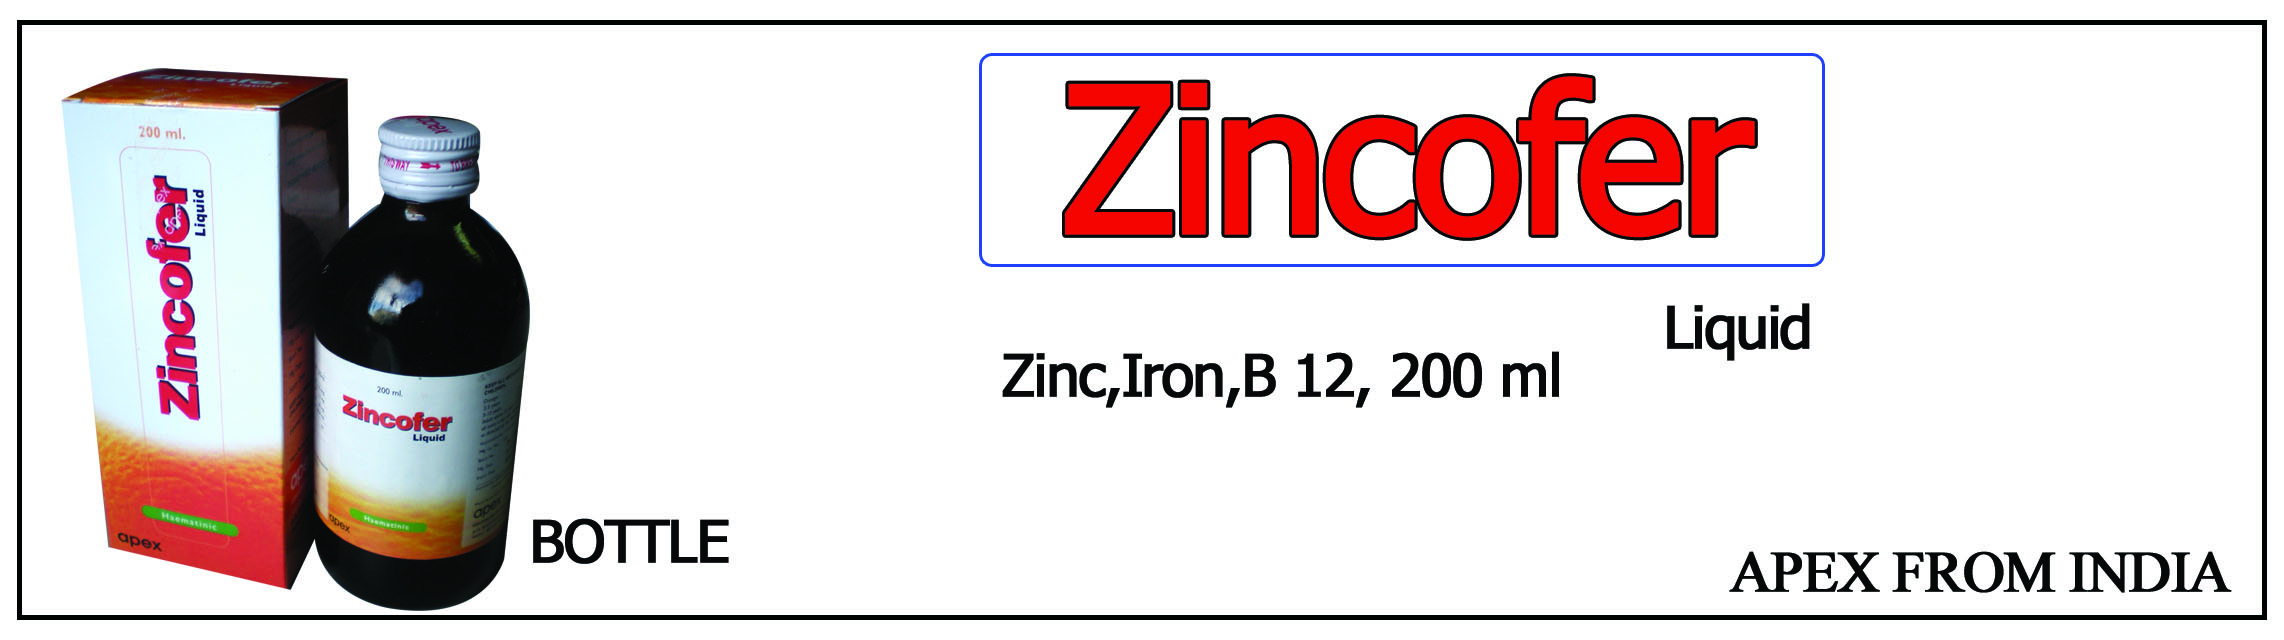 Zincofer Liquid